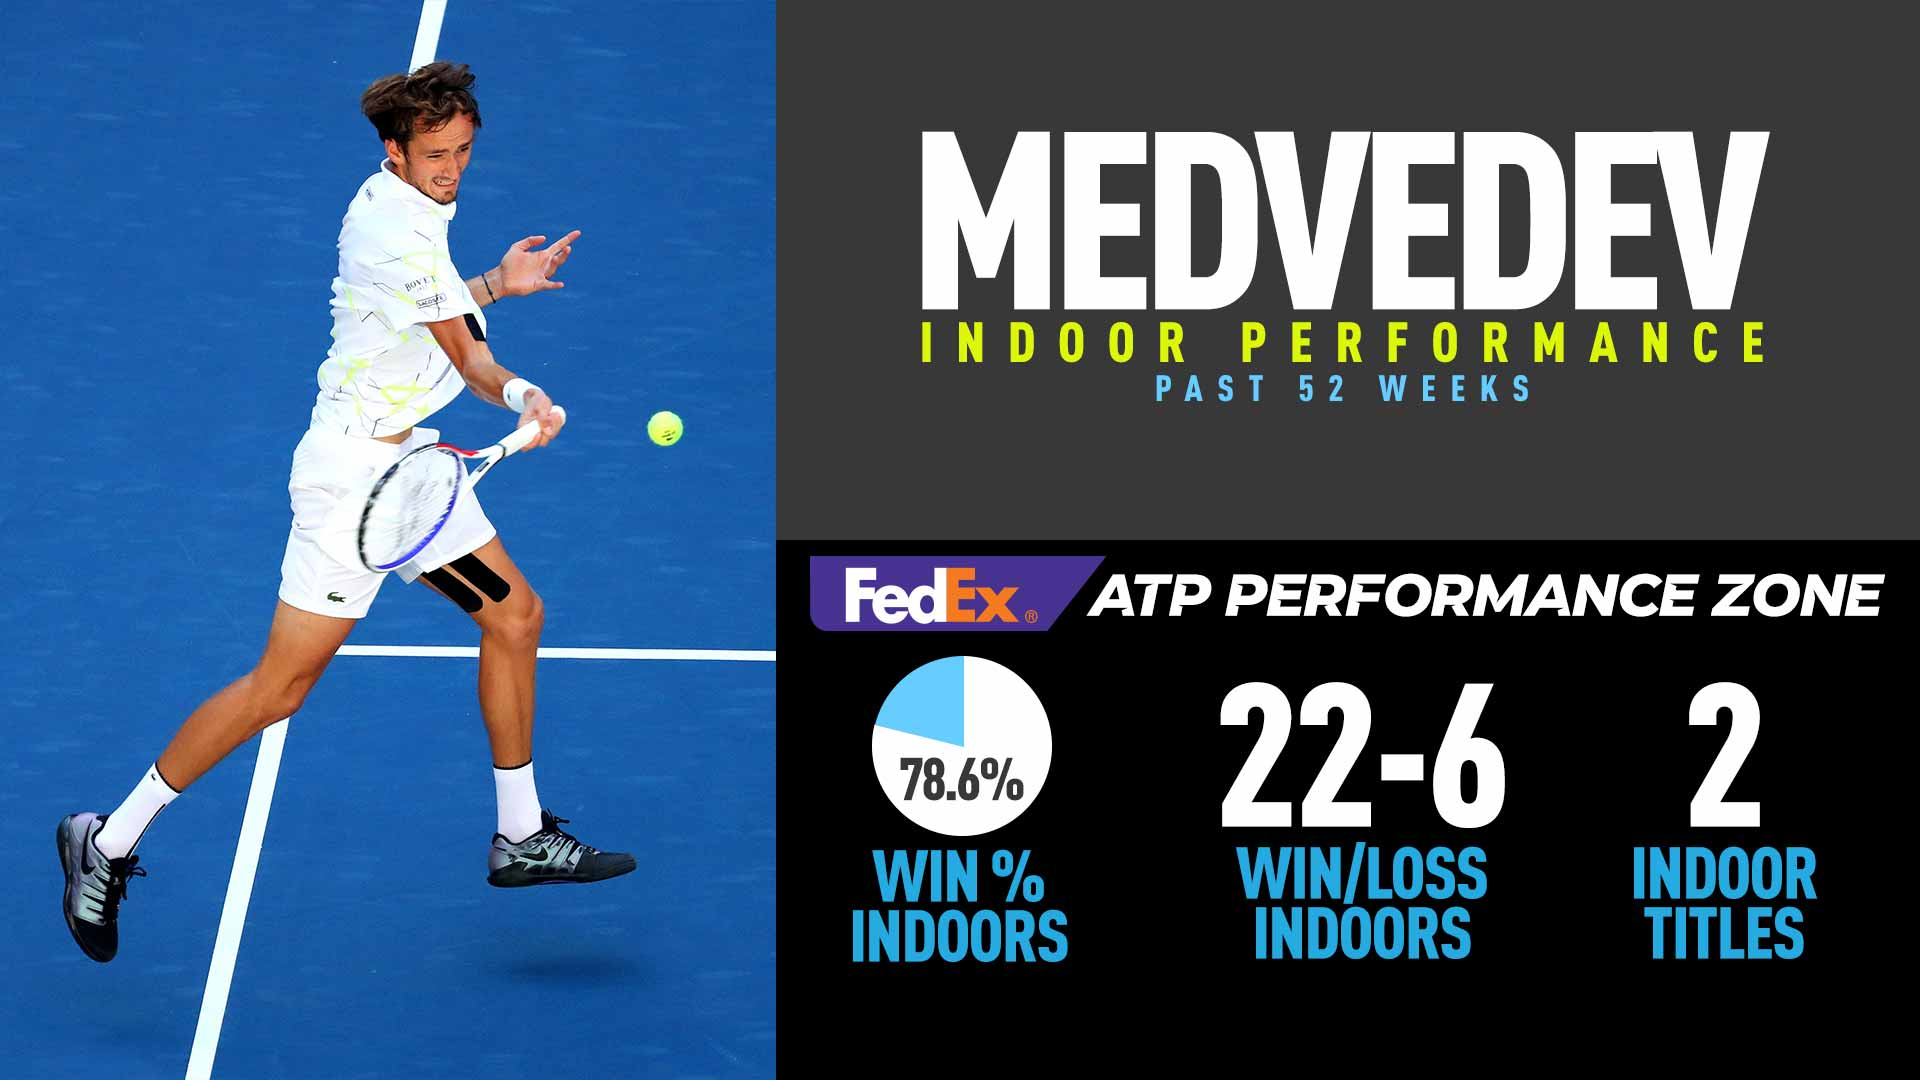 Daniil Medvedev leads the ATP Tour with 22 indoor victories over the past 52 weeks.